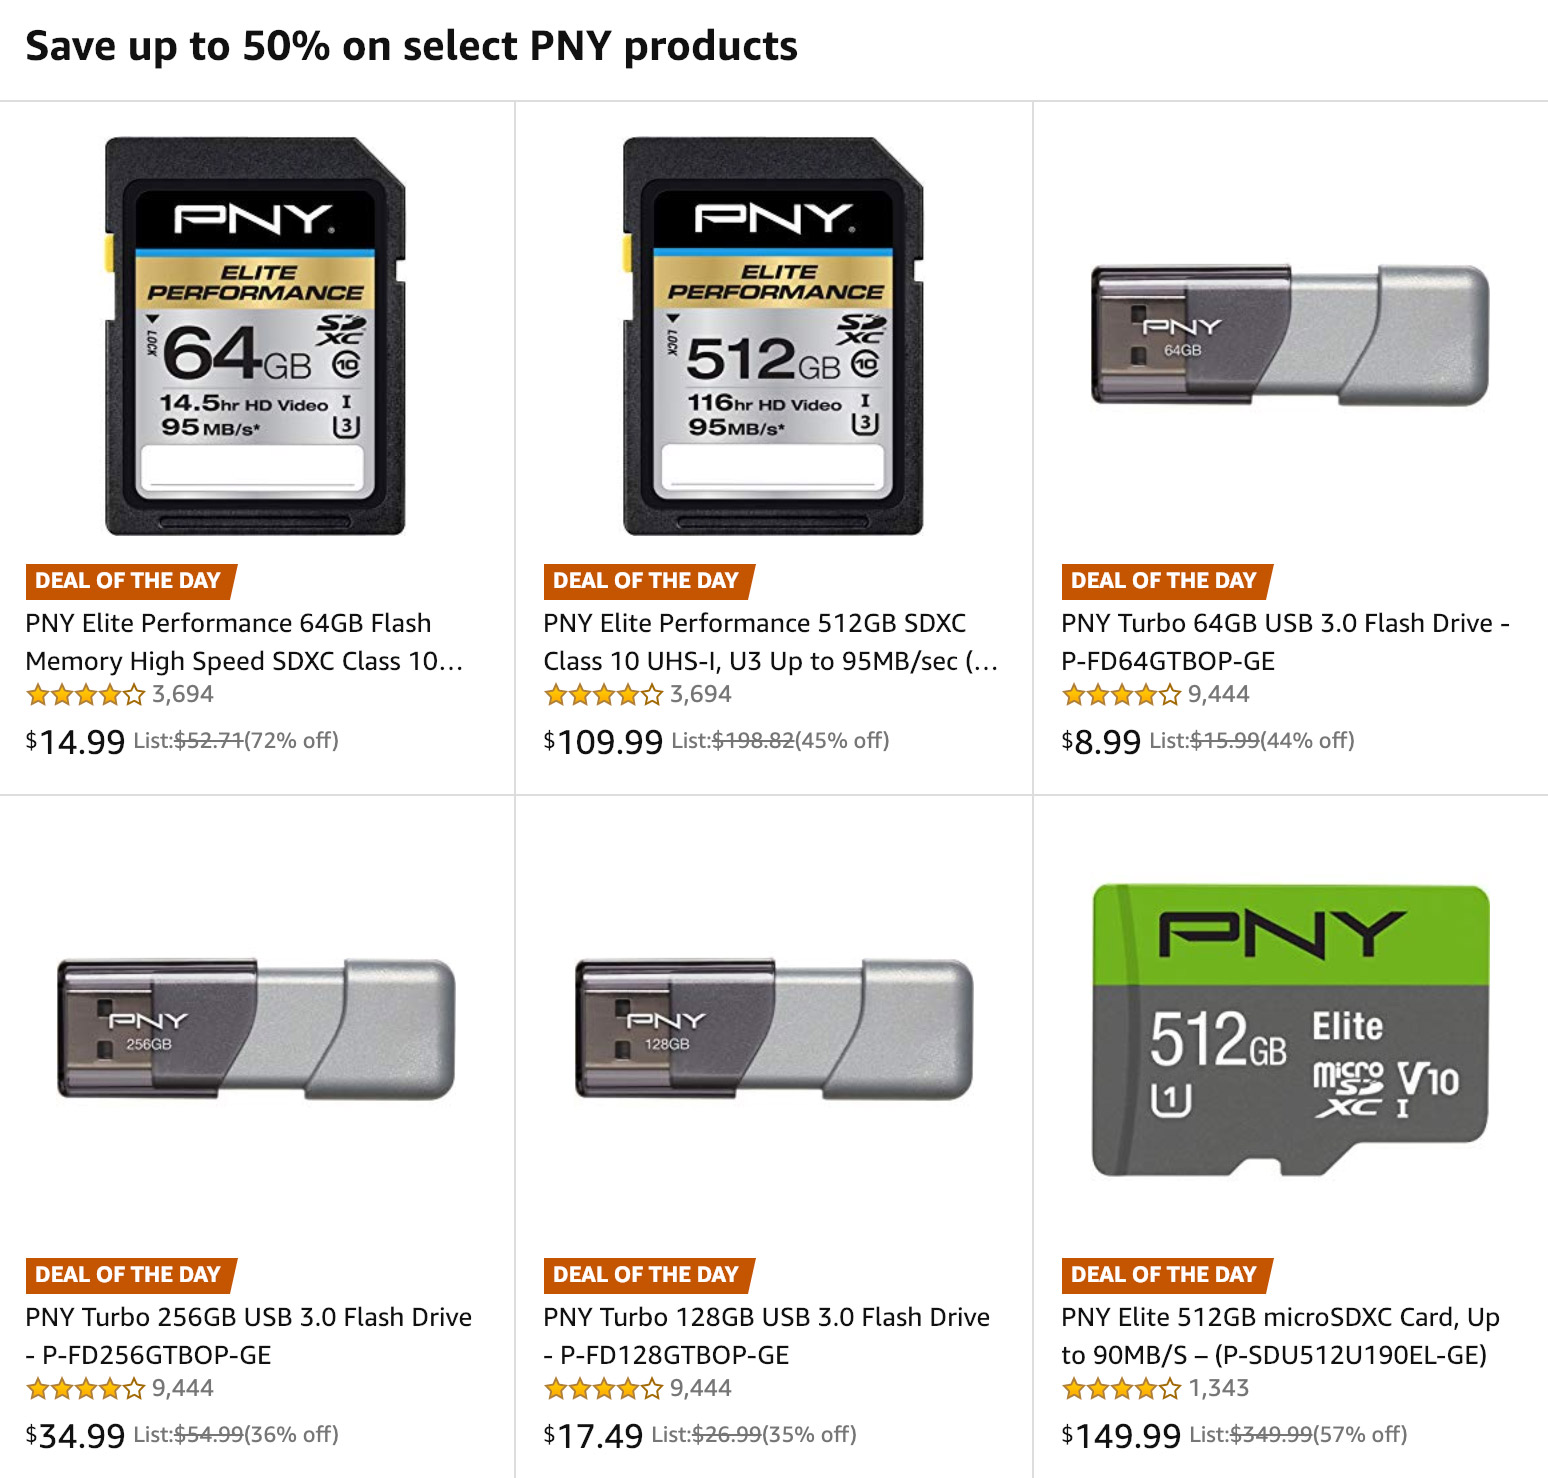 Pny Technologies Amazon Gold Box Deals Include Steals On Microsd Cards Usb Flash Drives And More Techeblog